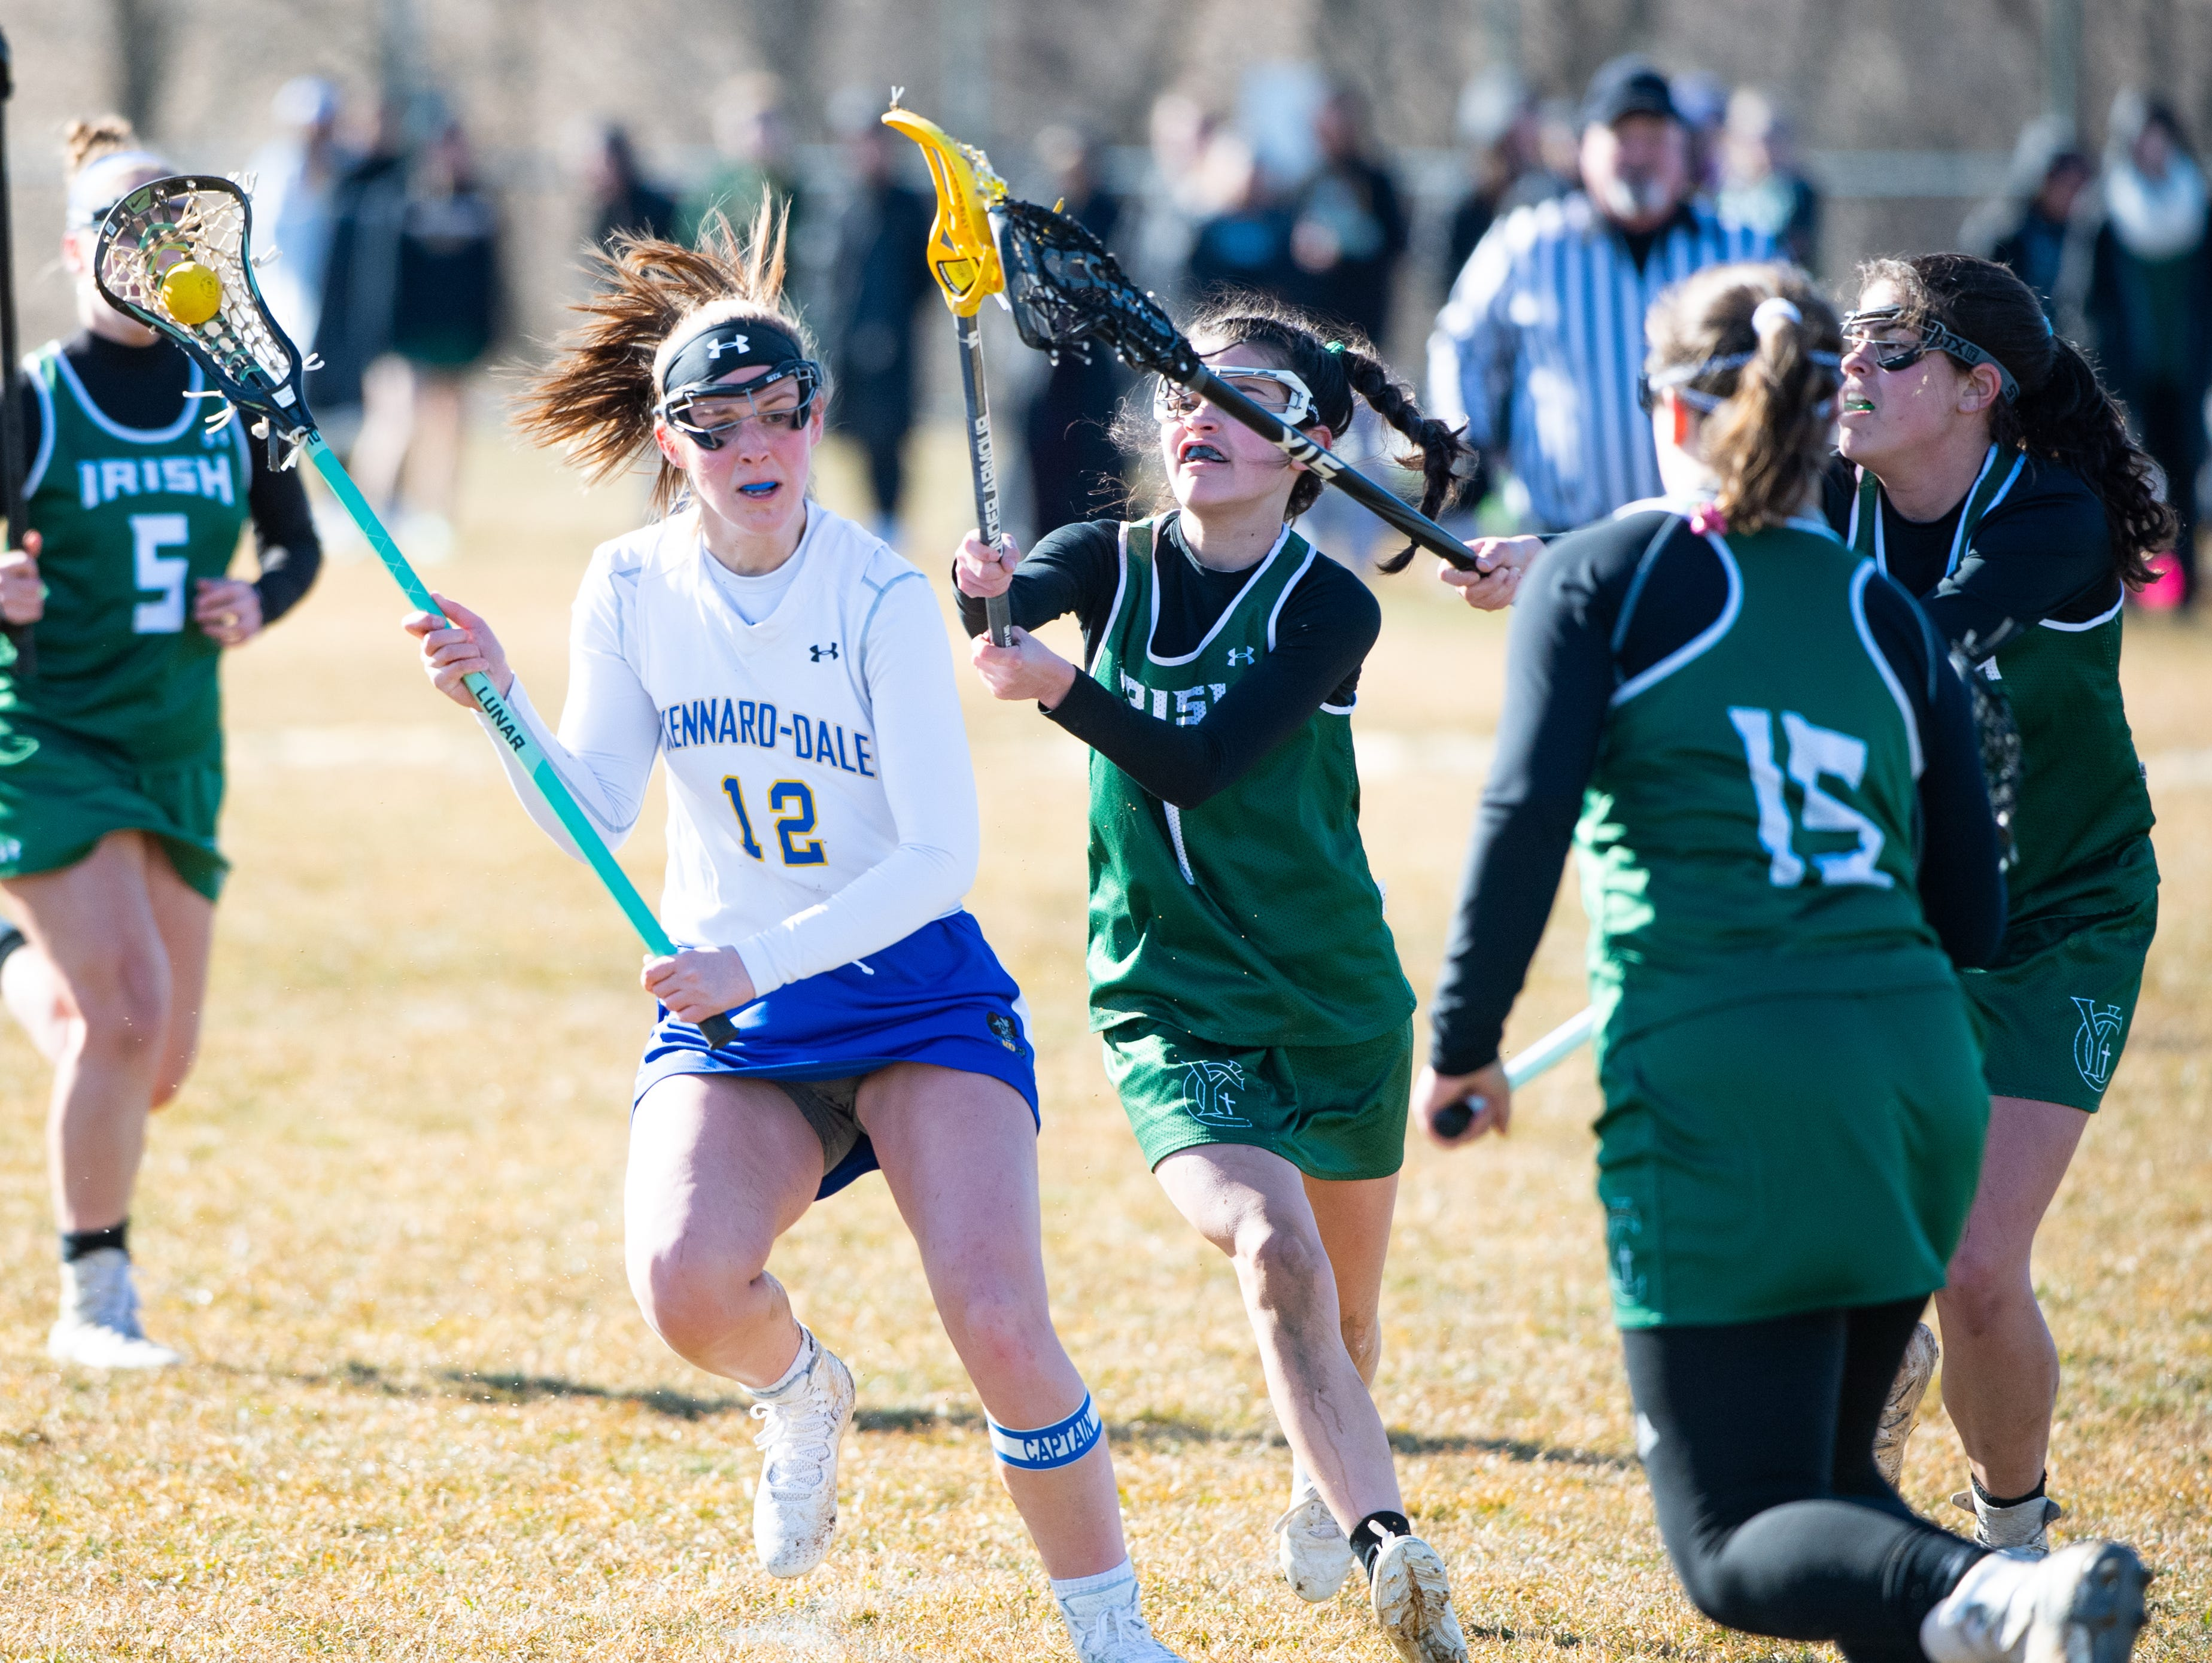 Mackenzie Young (12) tries to get past the defense during the girls' lacrosse game between Kennard-Dale and York Catholic, March 26, 2019 at Kennard-Dale High School. The Fighting Irish defeated the Rams 10 to 9.